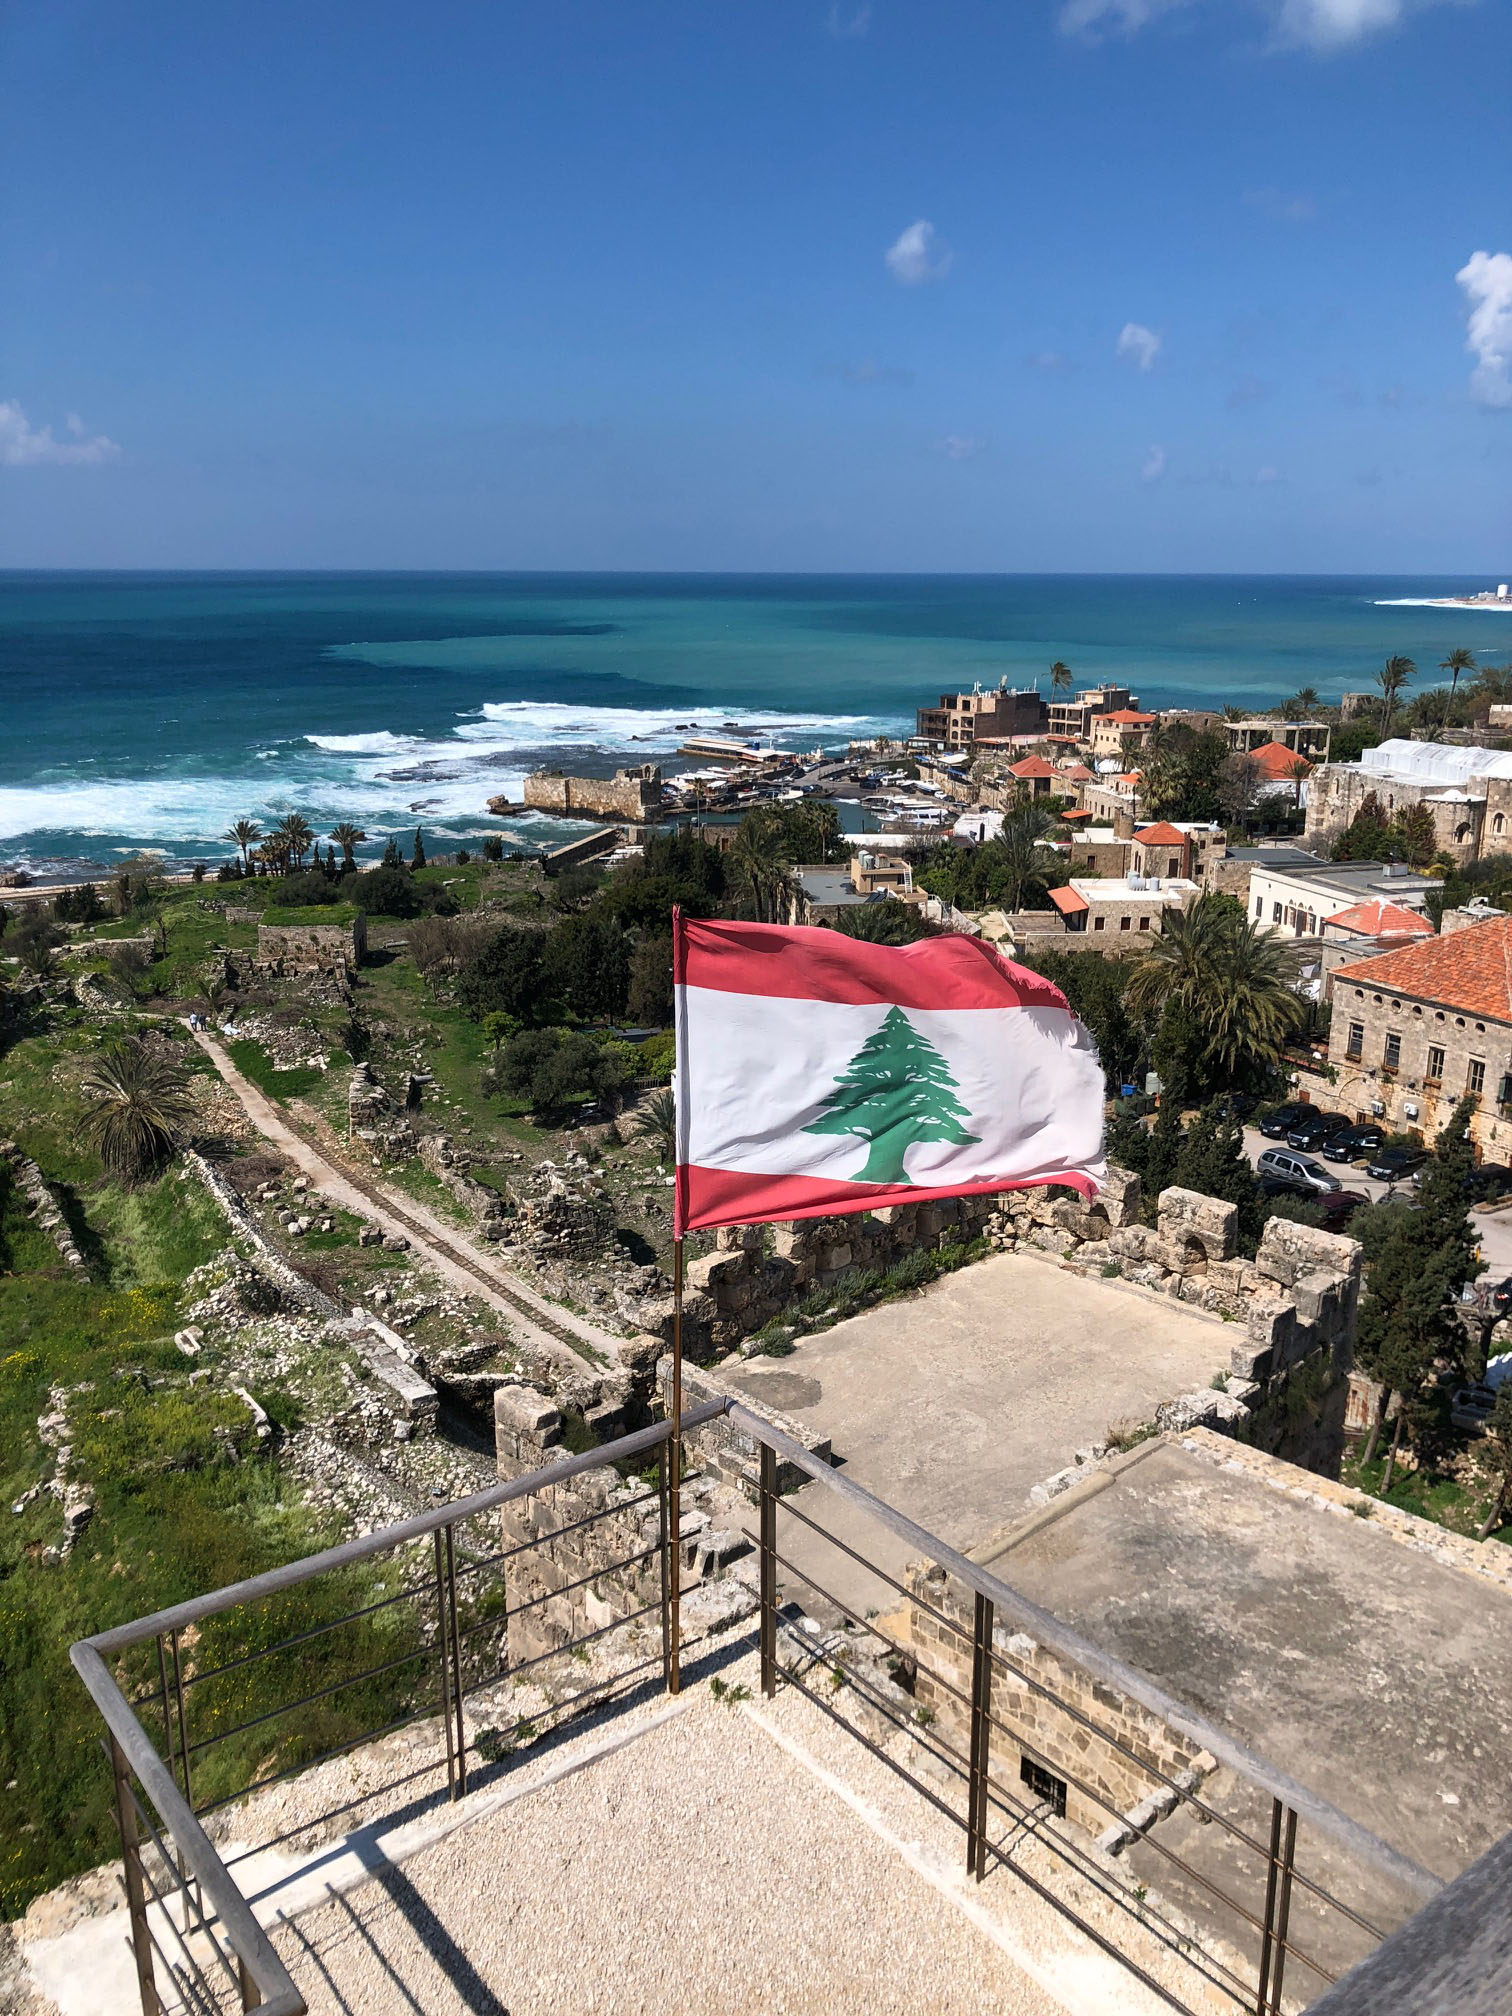 It was so beautiful we even had a day trip in Byblos, one of the oldest cities in the world. Photo credit: Arguin, 2019